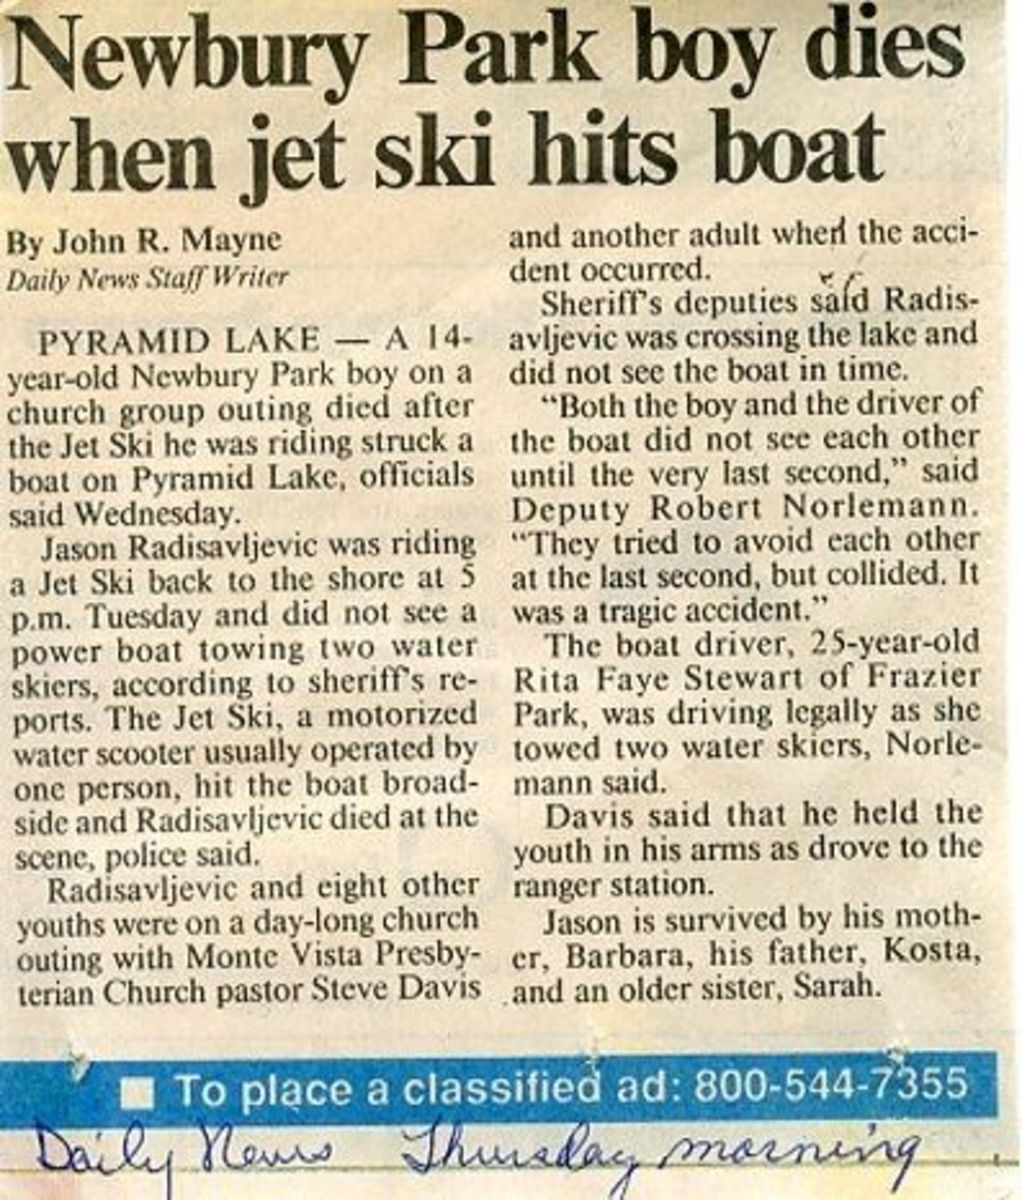 Daily News Story of Jason's Death, sent to us by  friend.